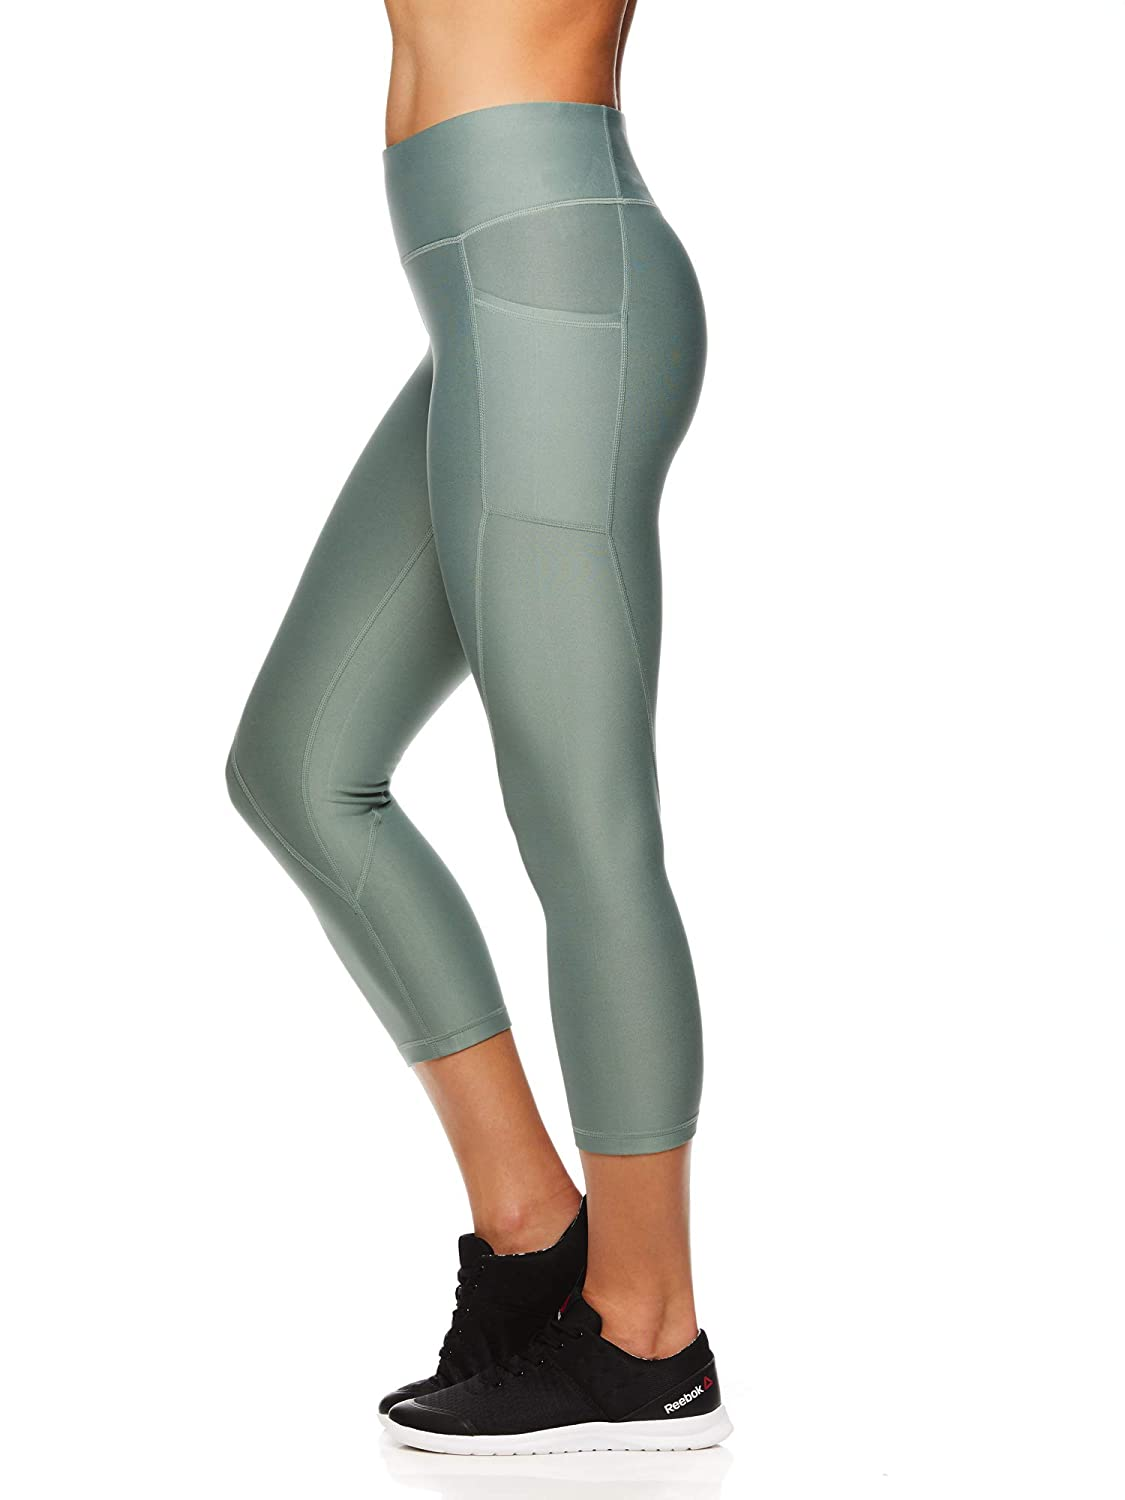 Reebok Womens Printed Capri Leggings with Mid-Rise Waist Cropped Performance Compression Tights - Chinois Green, Large